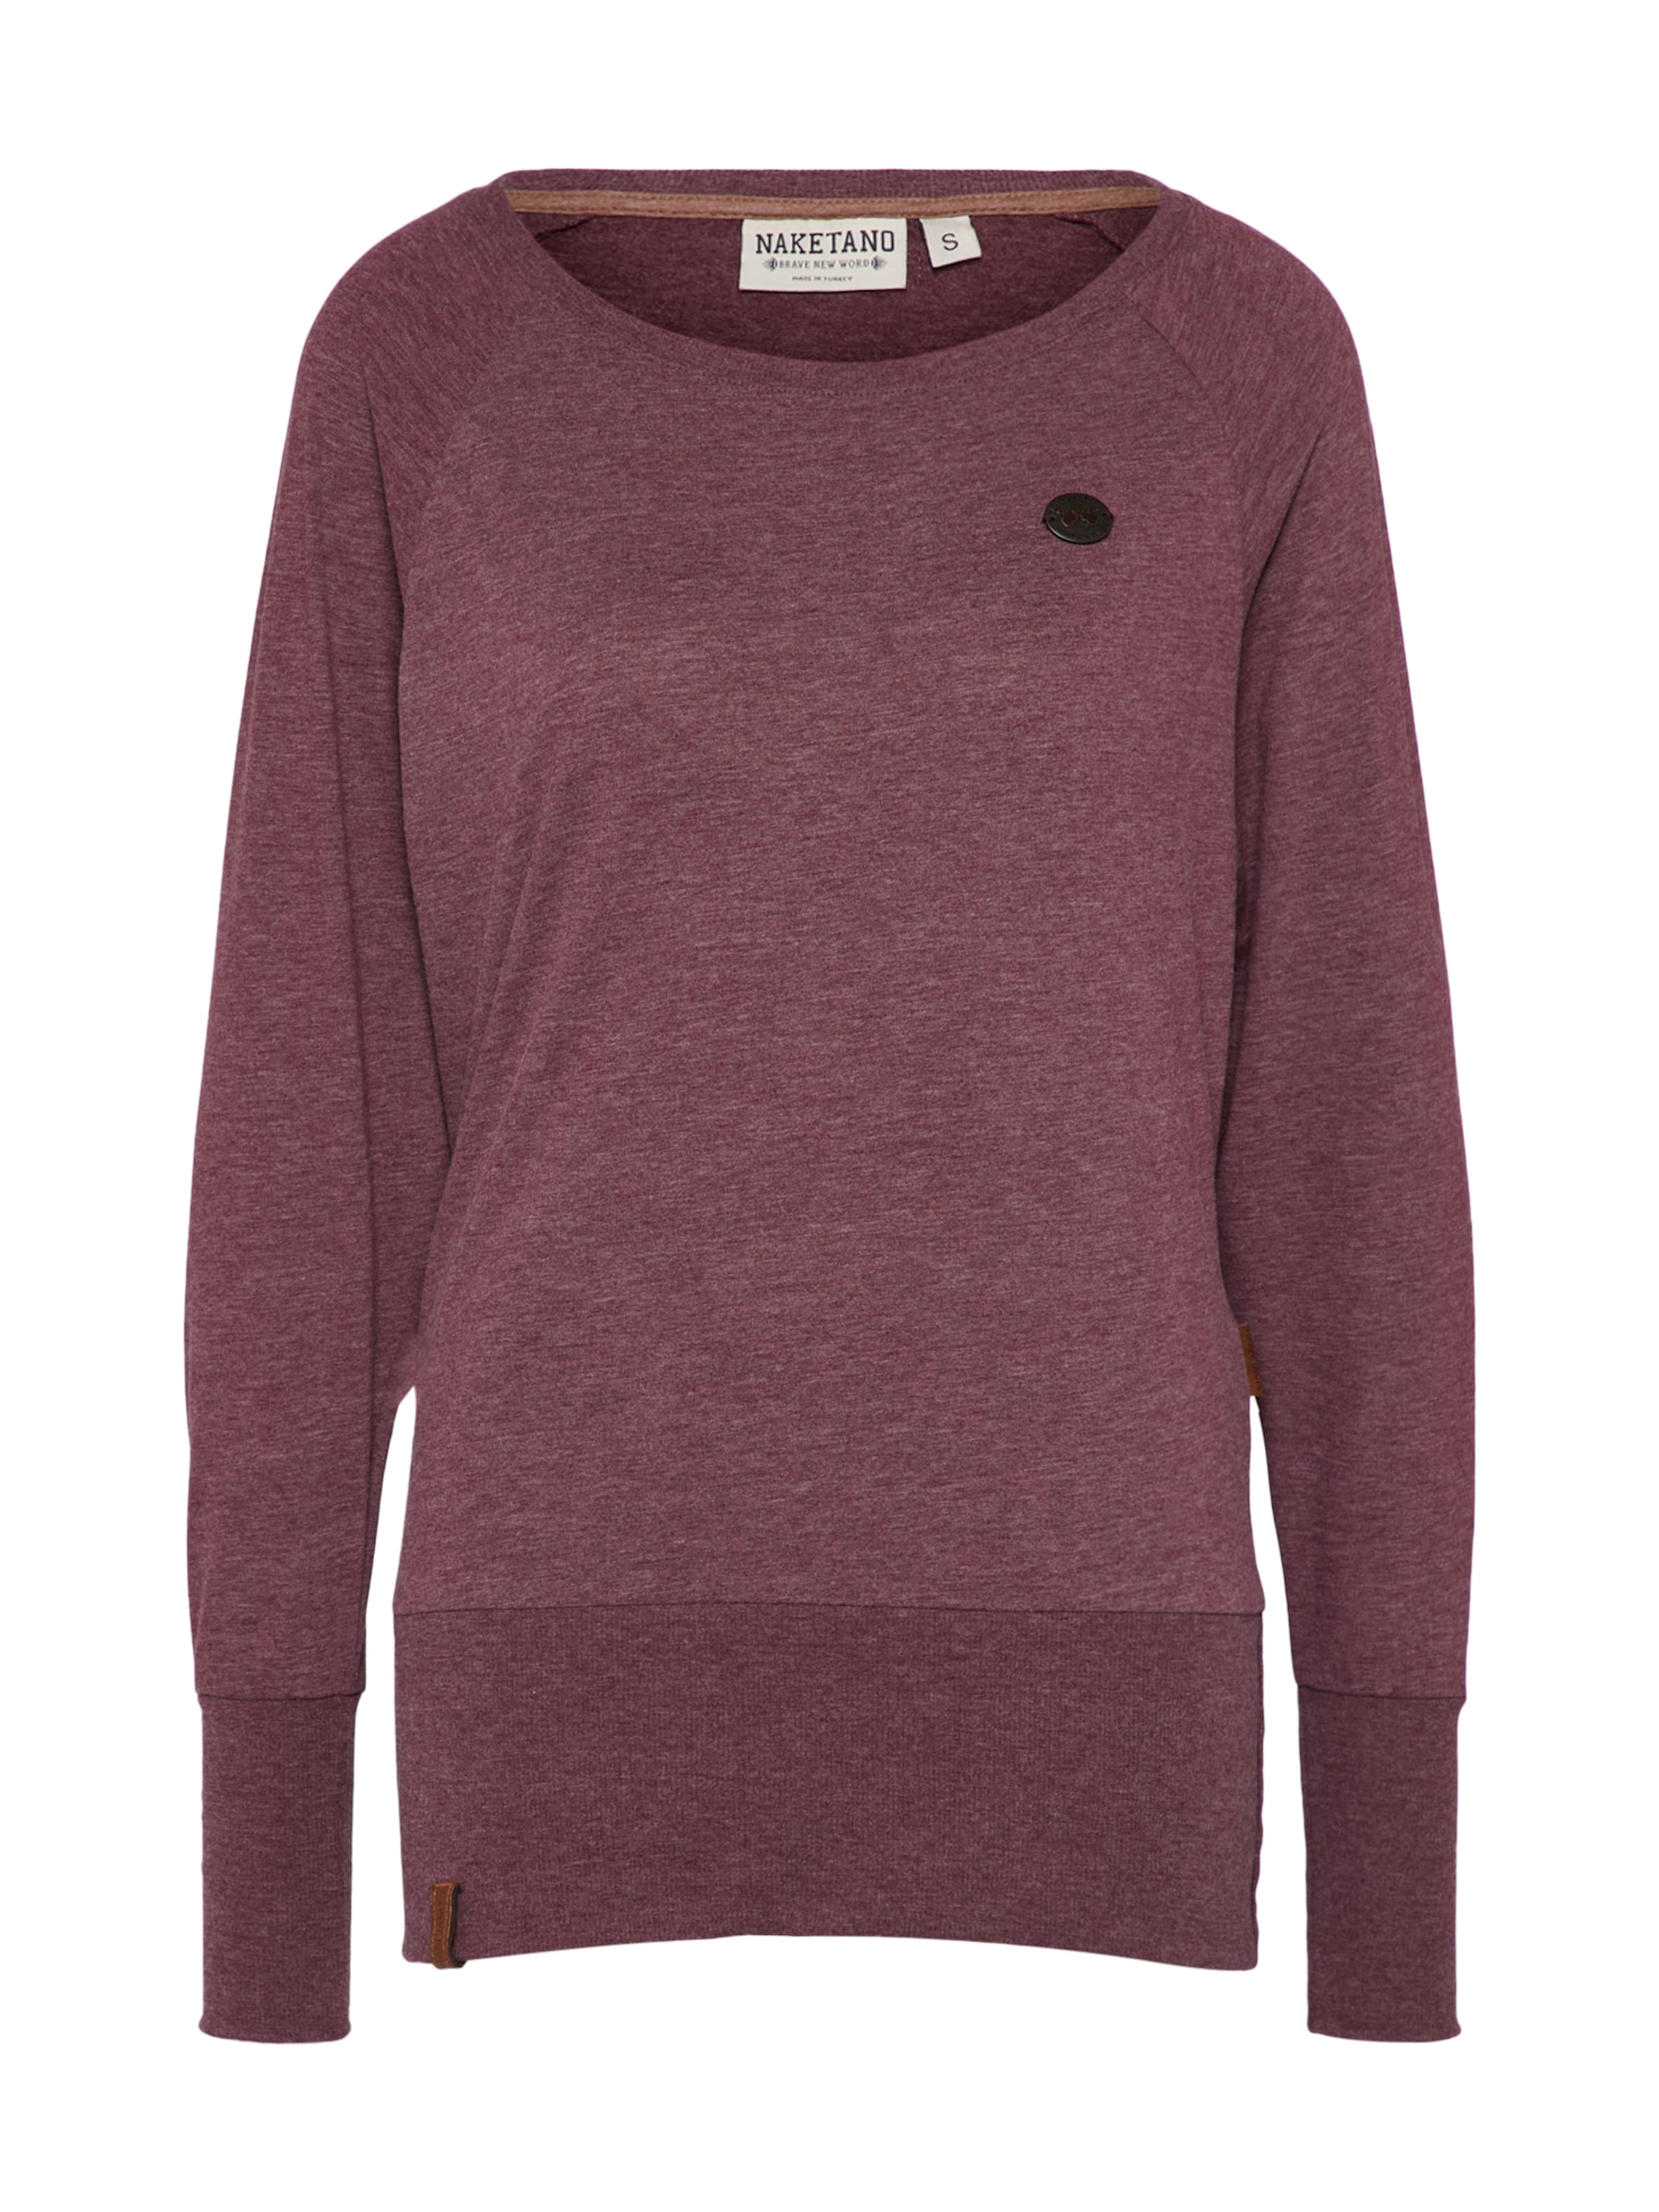 In 'groupie' Pullover Naketano Naketano Bordeaux In Naketano 'groupie' Bordeaux Pullover 2YWED9IH